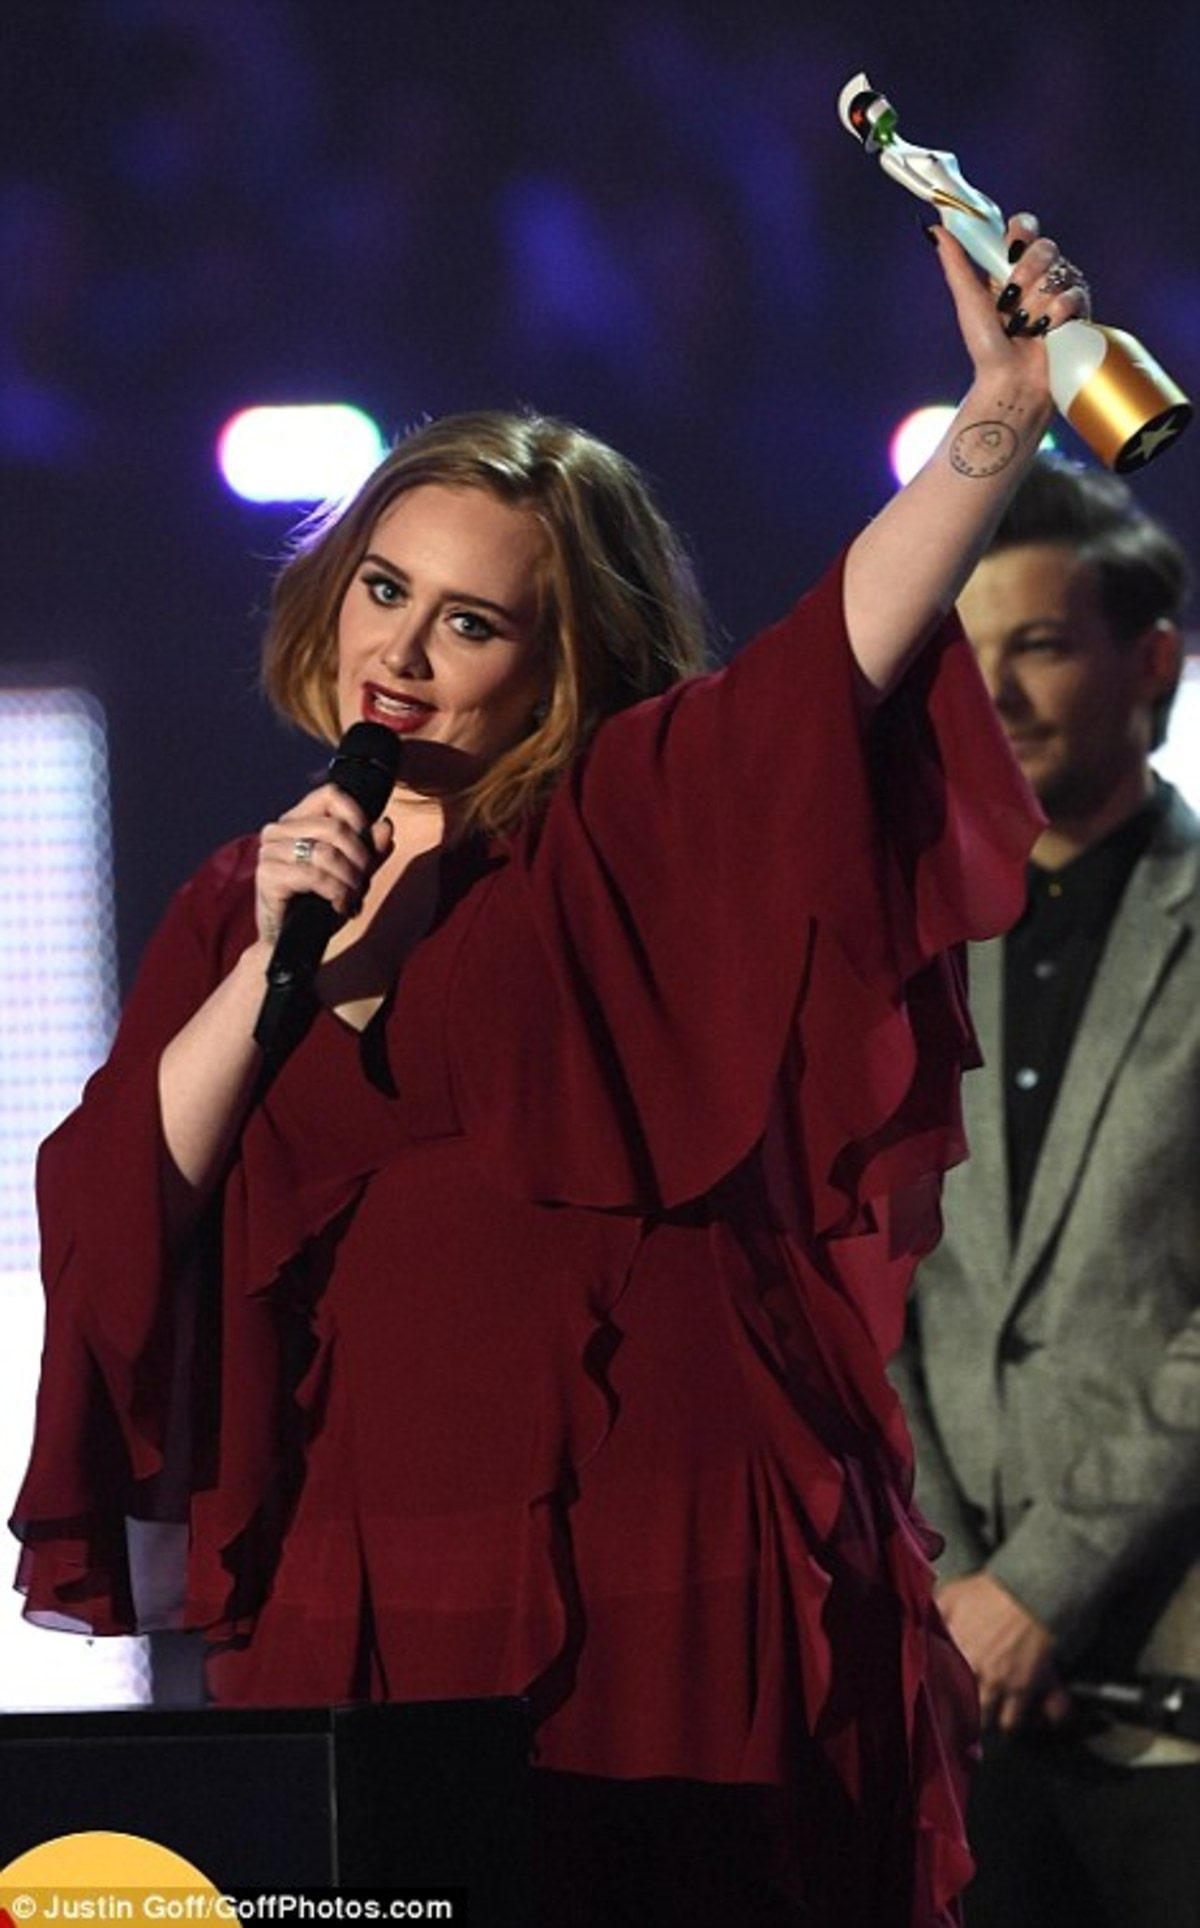 318650F800000578-3462742-The_first_of_many_The_star_lifted_the_trophy_as_she_thanked_her_-m-65_1456357826569